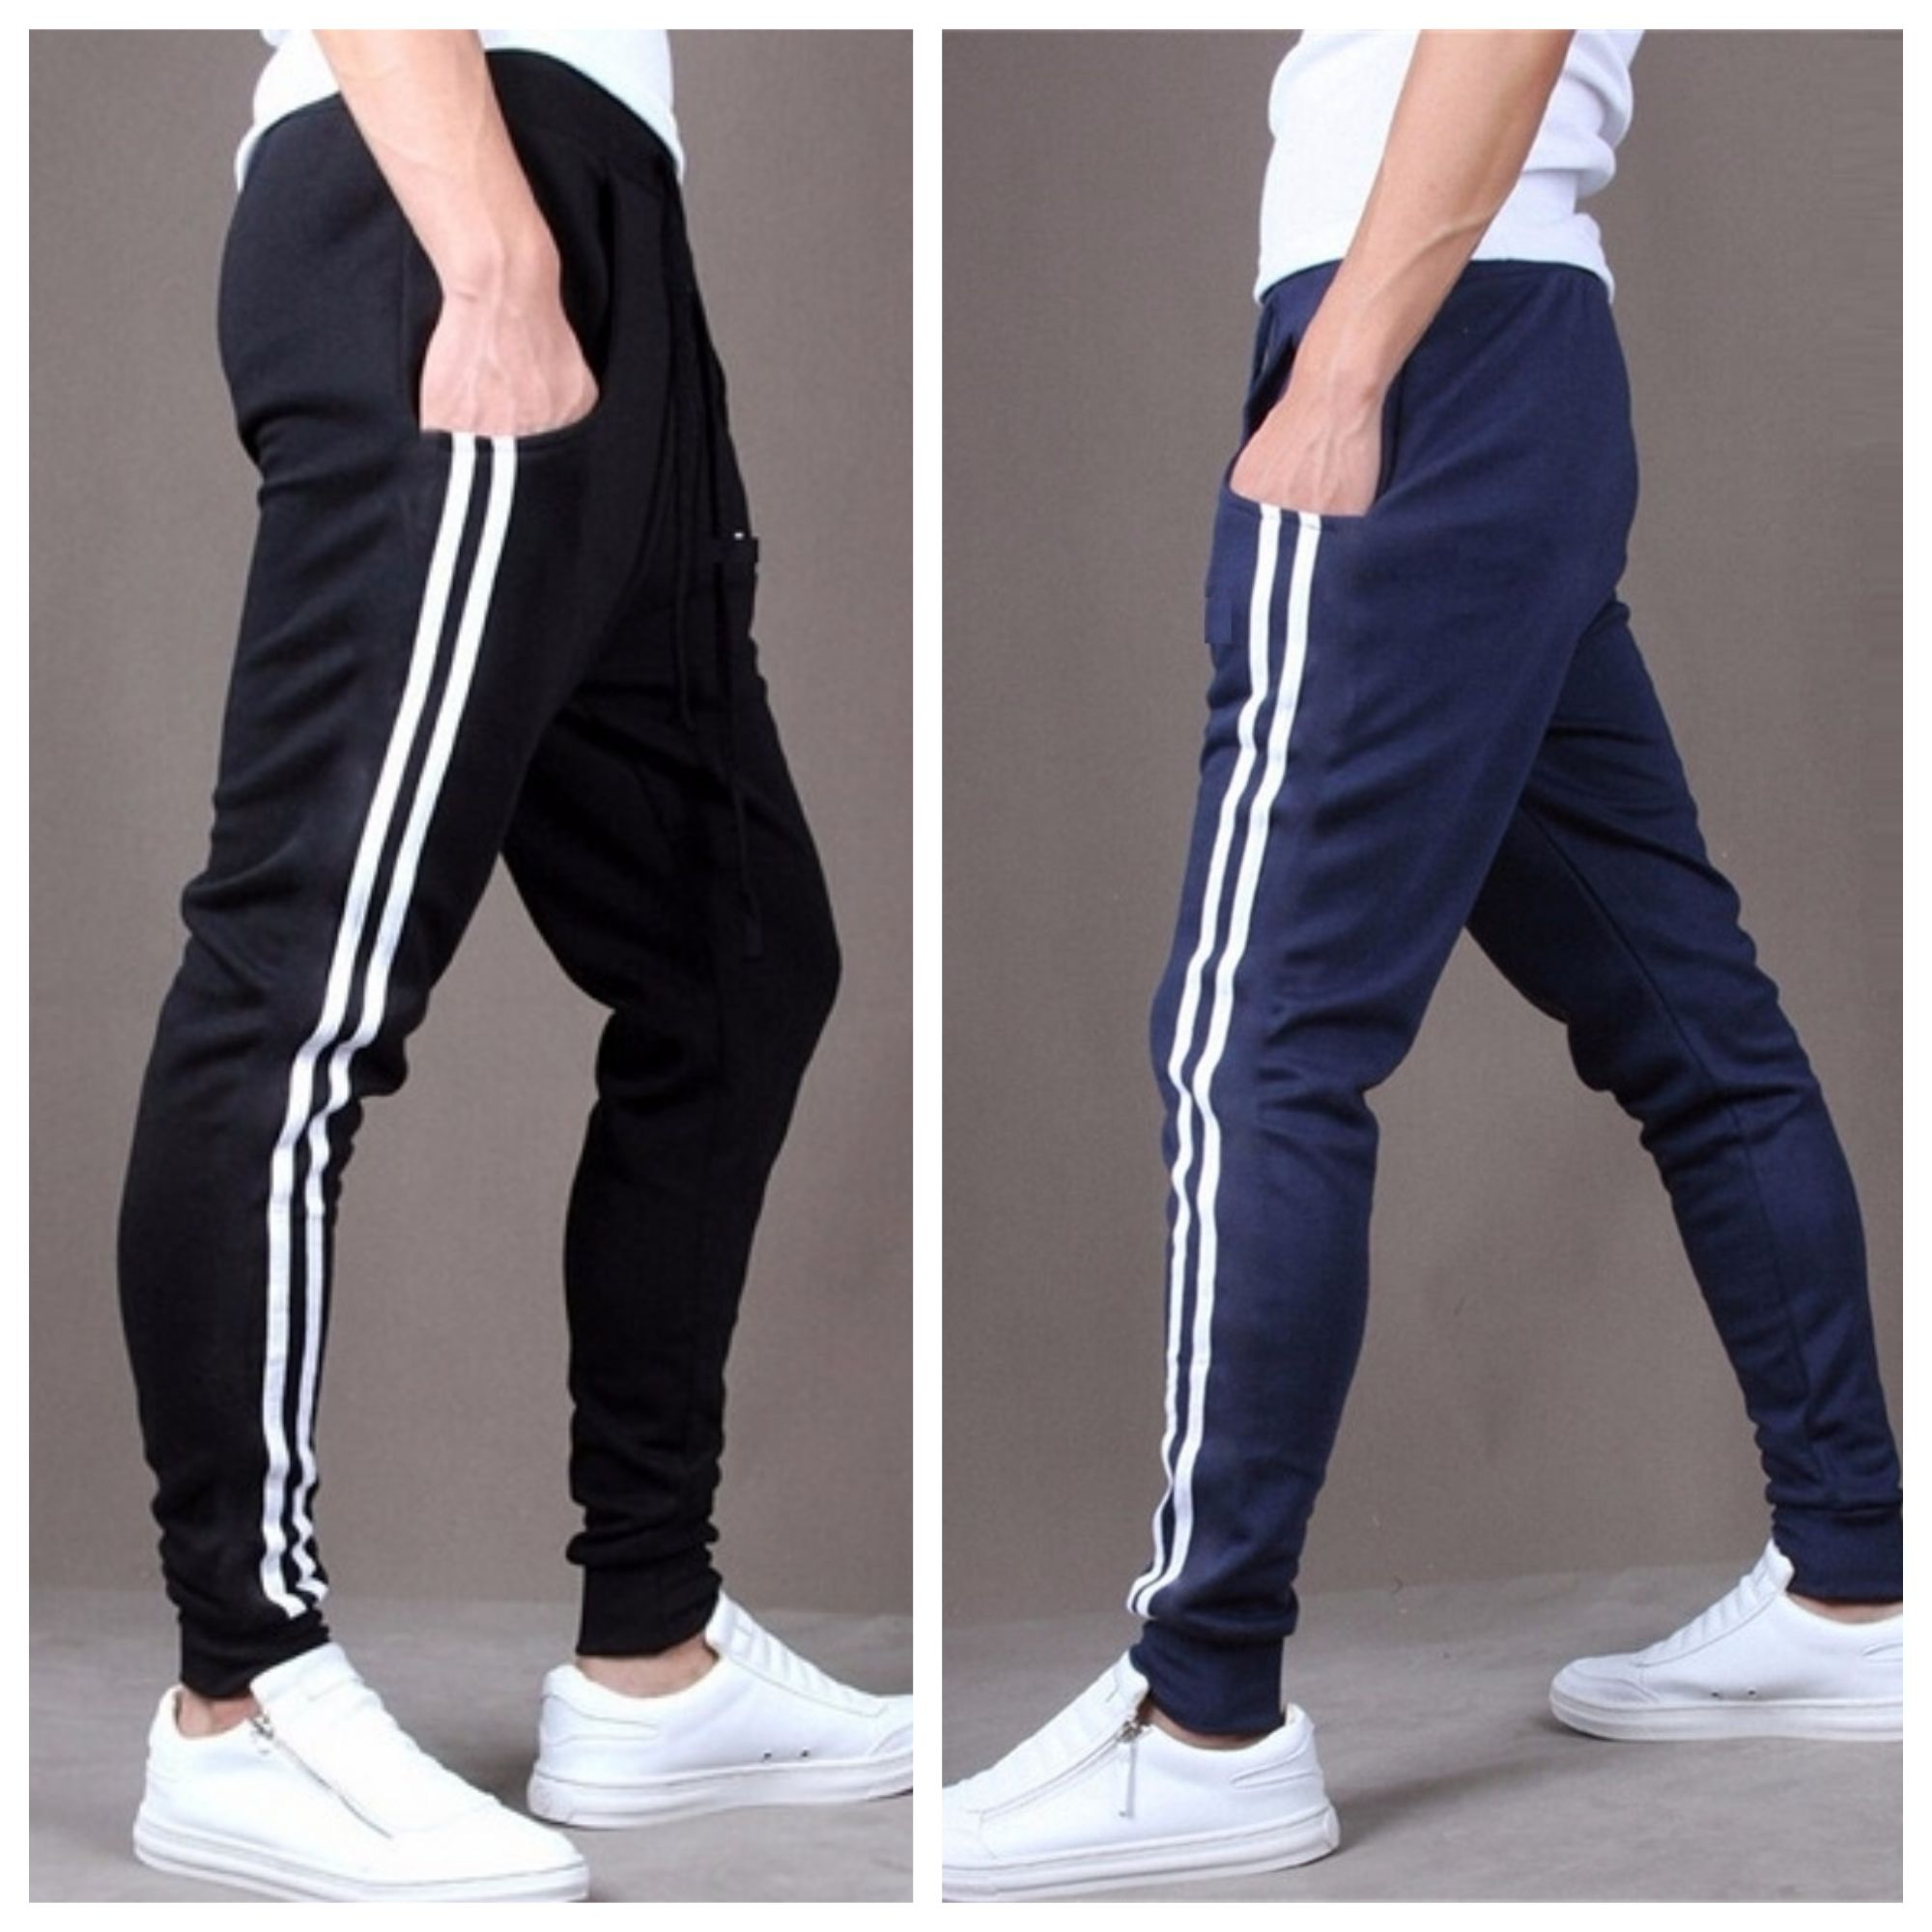 8e65a4b0f8fec5 Joggers Park Combo Of 2 Men's Fashion Casual Skinny Sports Black Blue Track  Pants: Buy Online at Best Price on Snapdeal